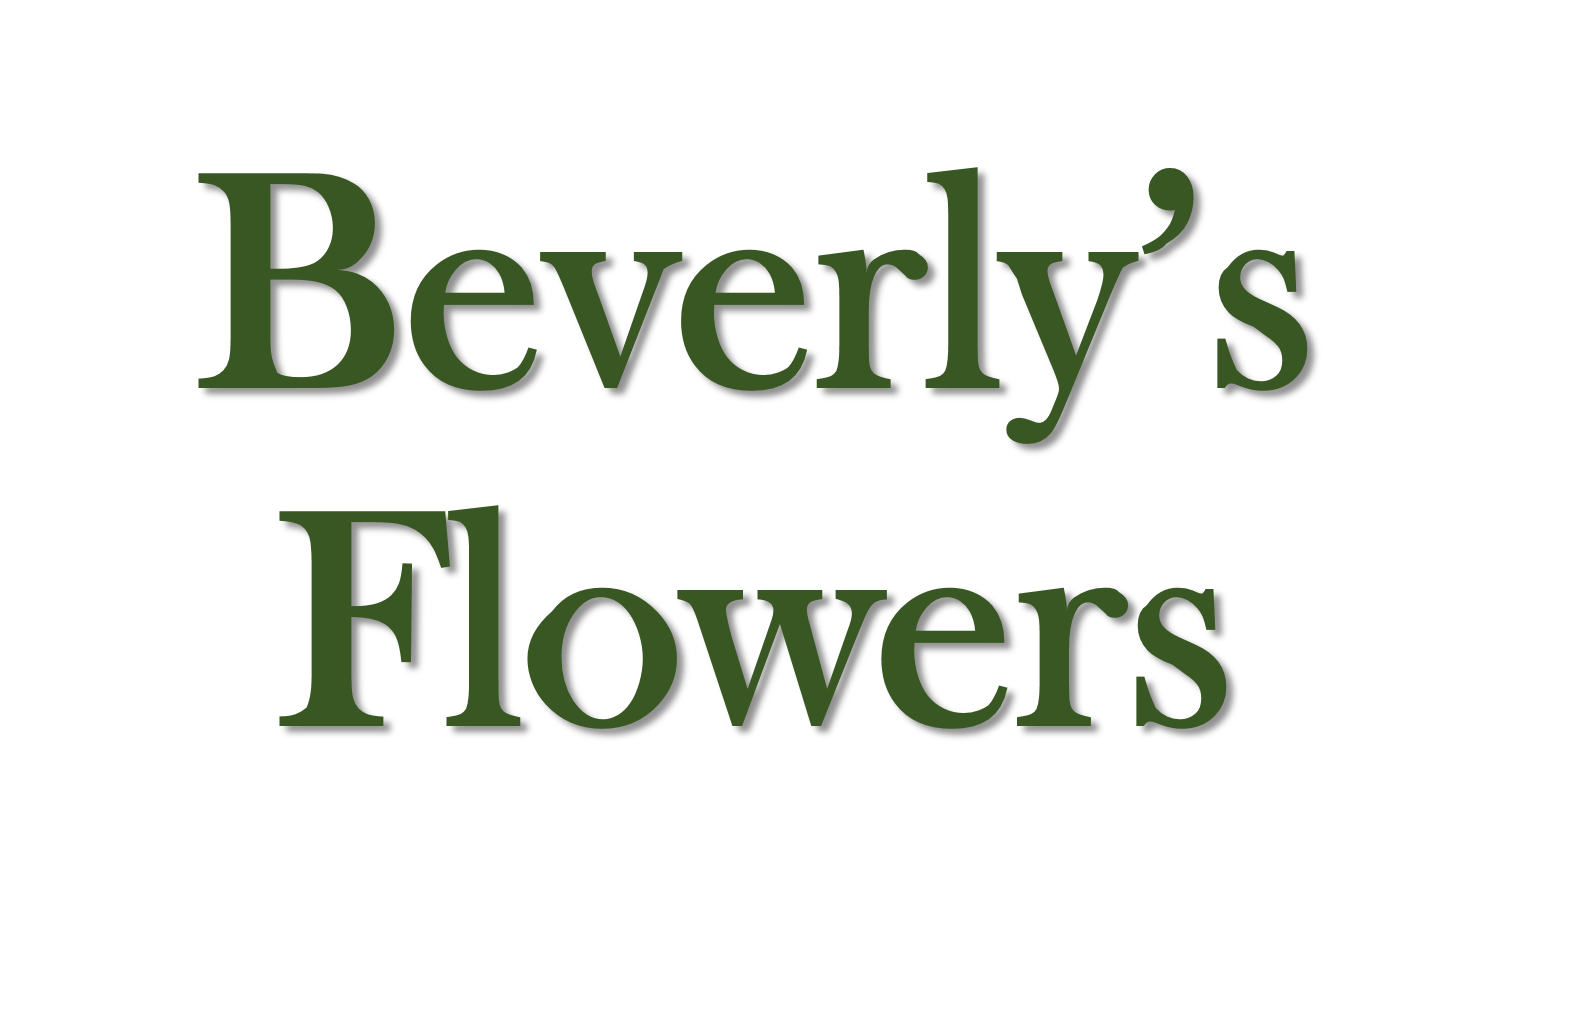 Beverly's Flowers